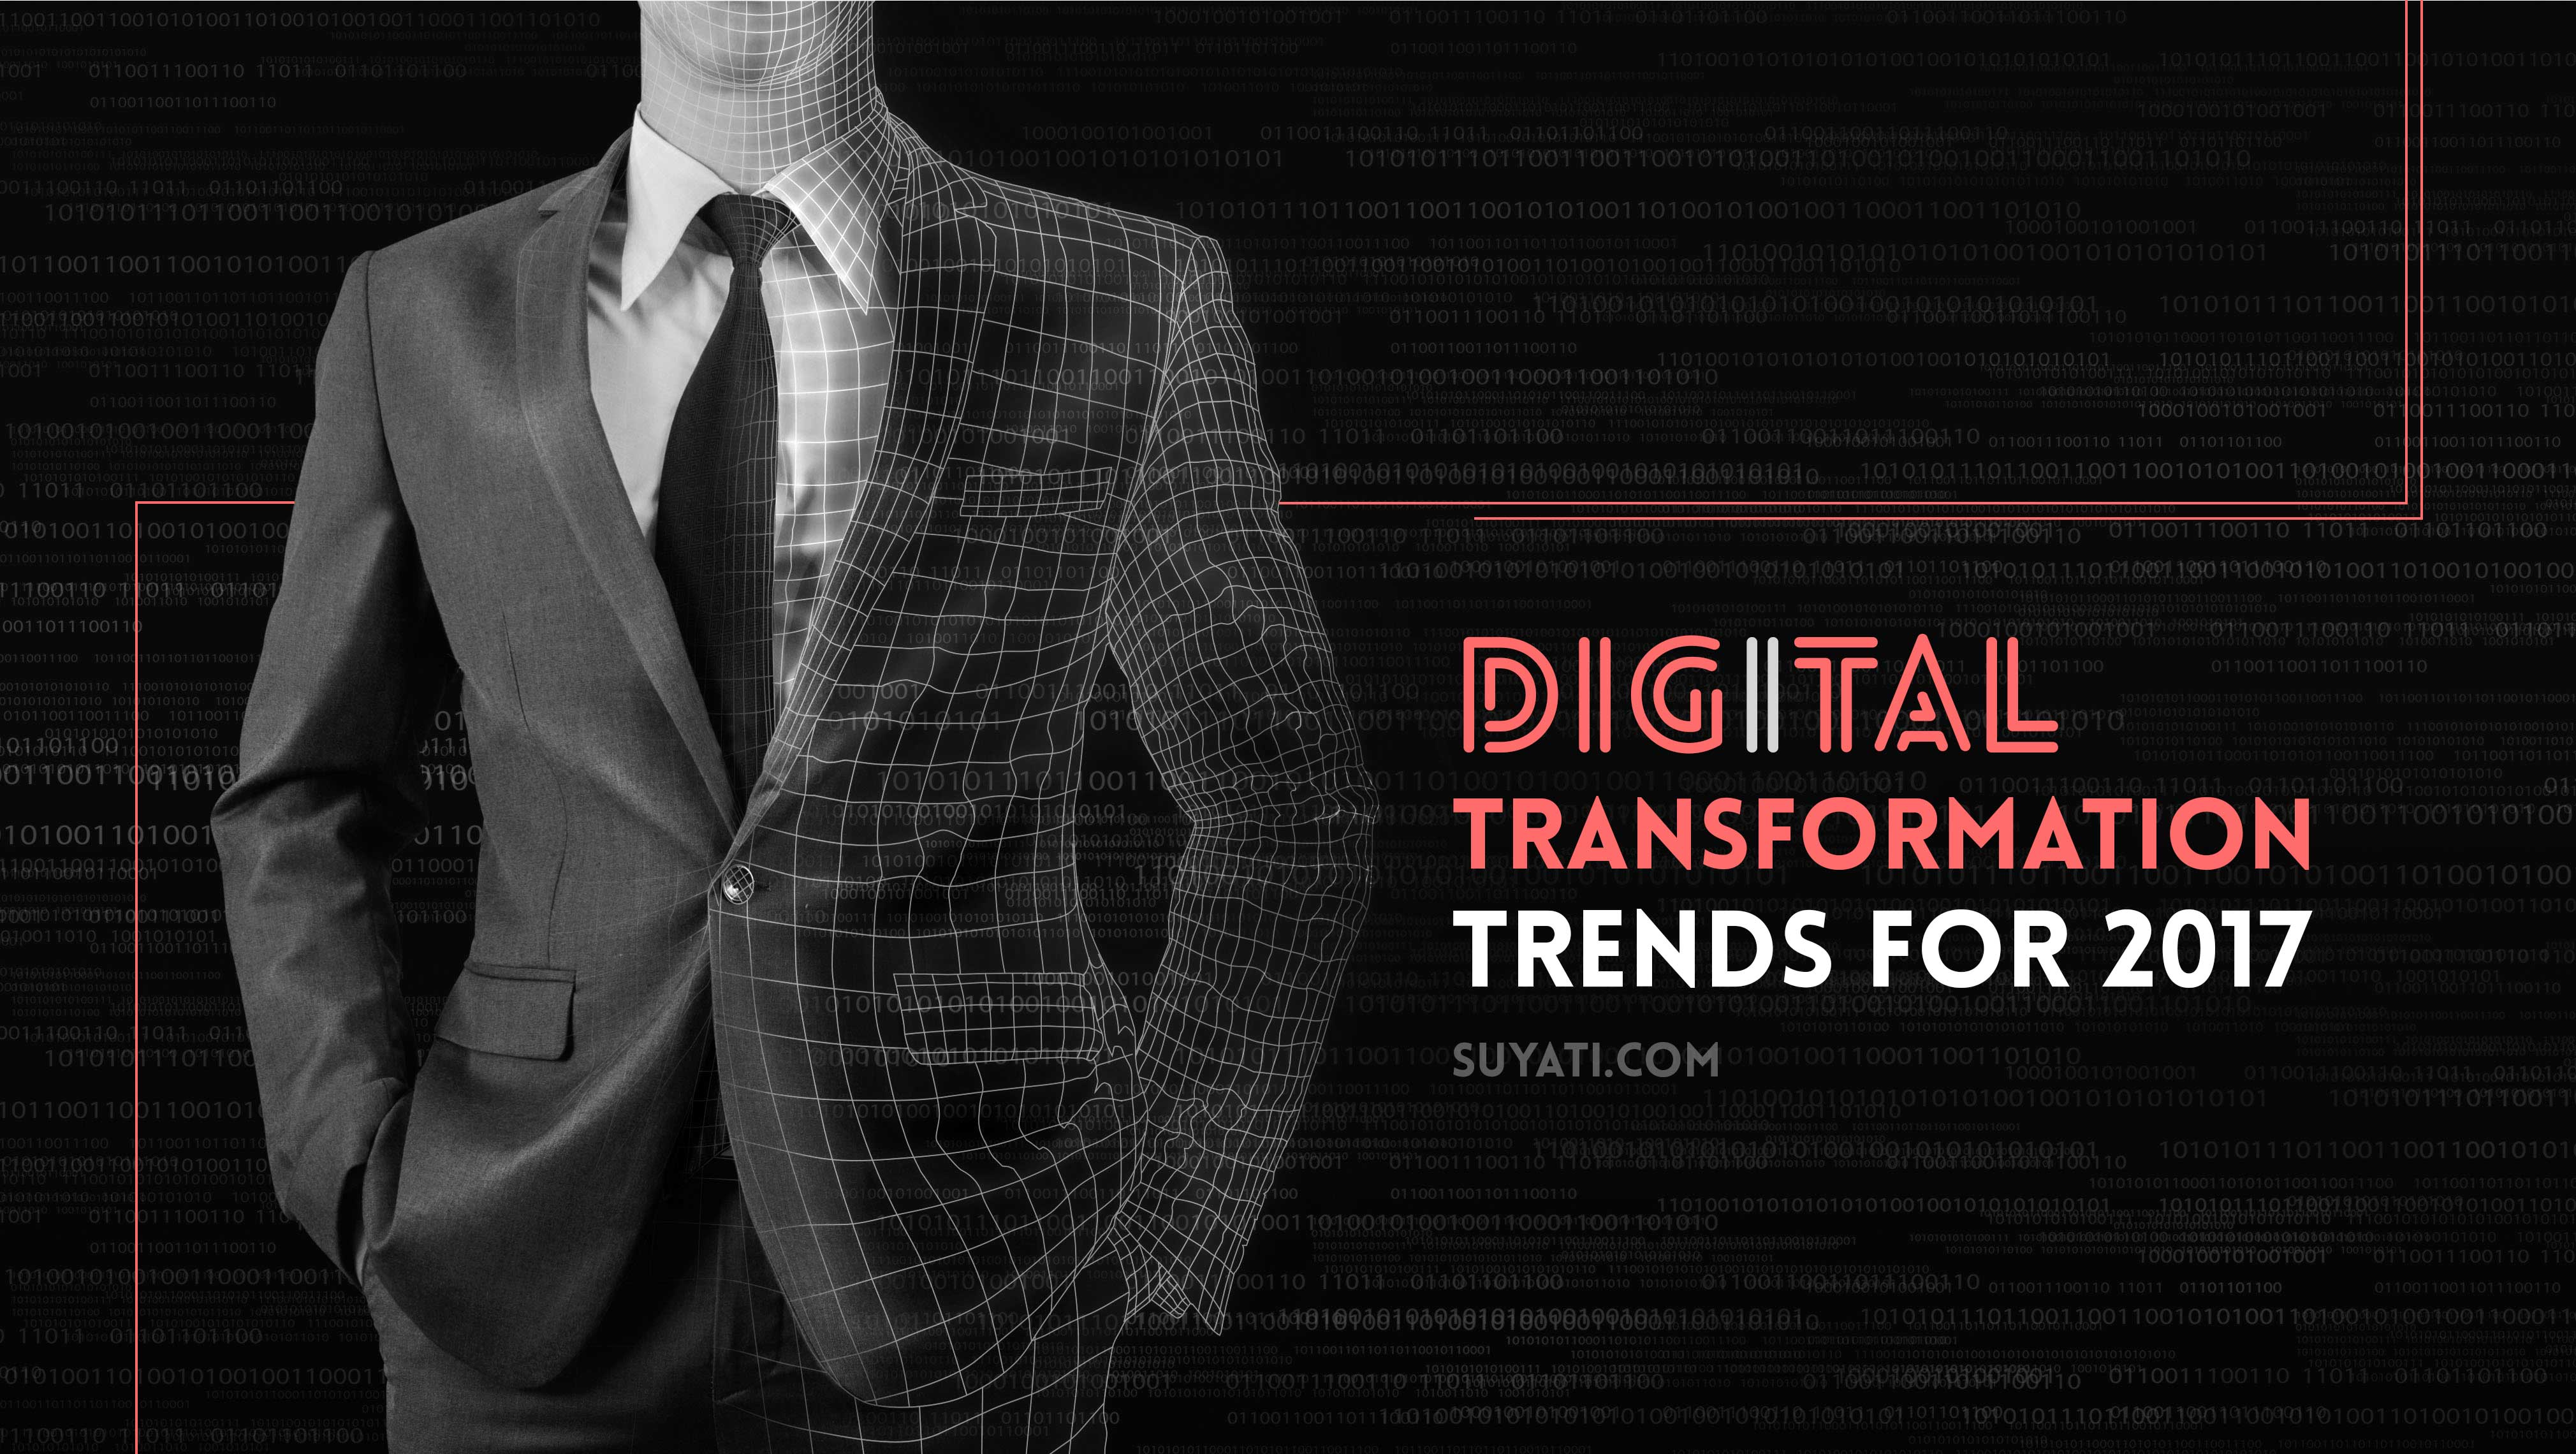 The digital transformation trends that would dominate 2017